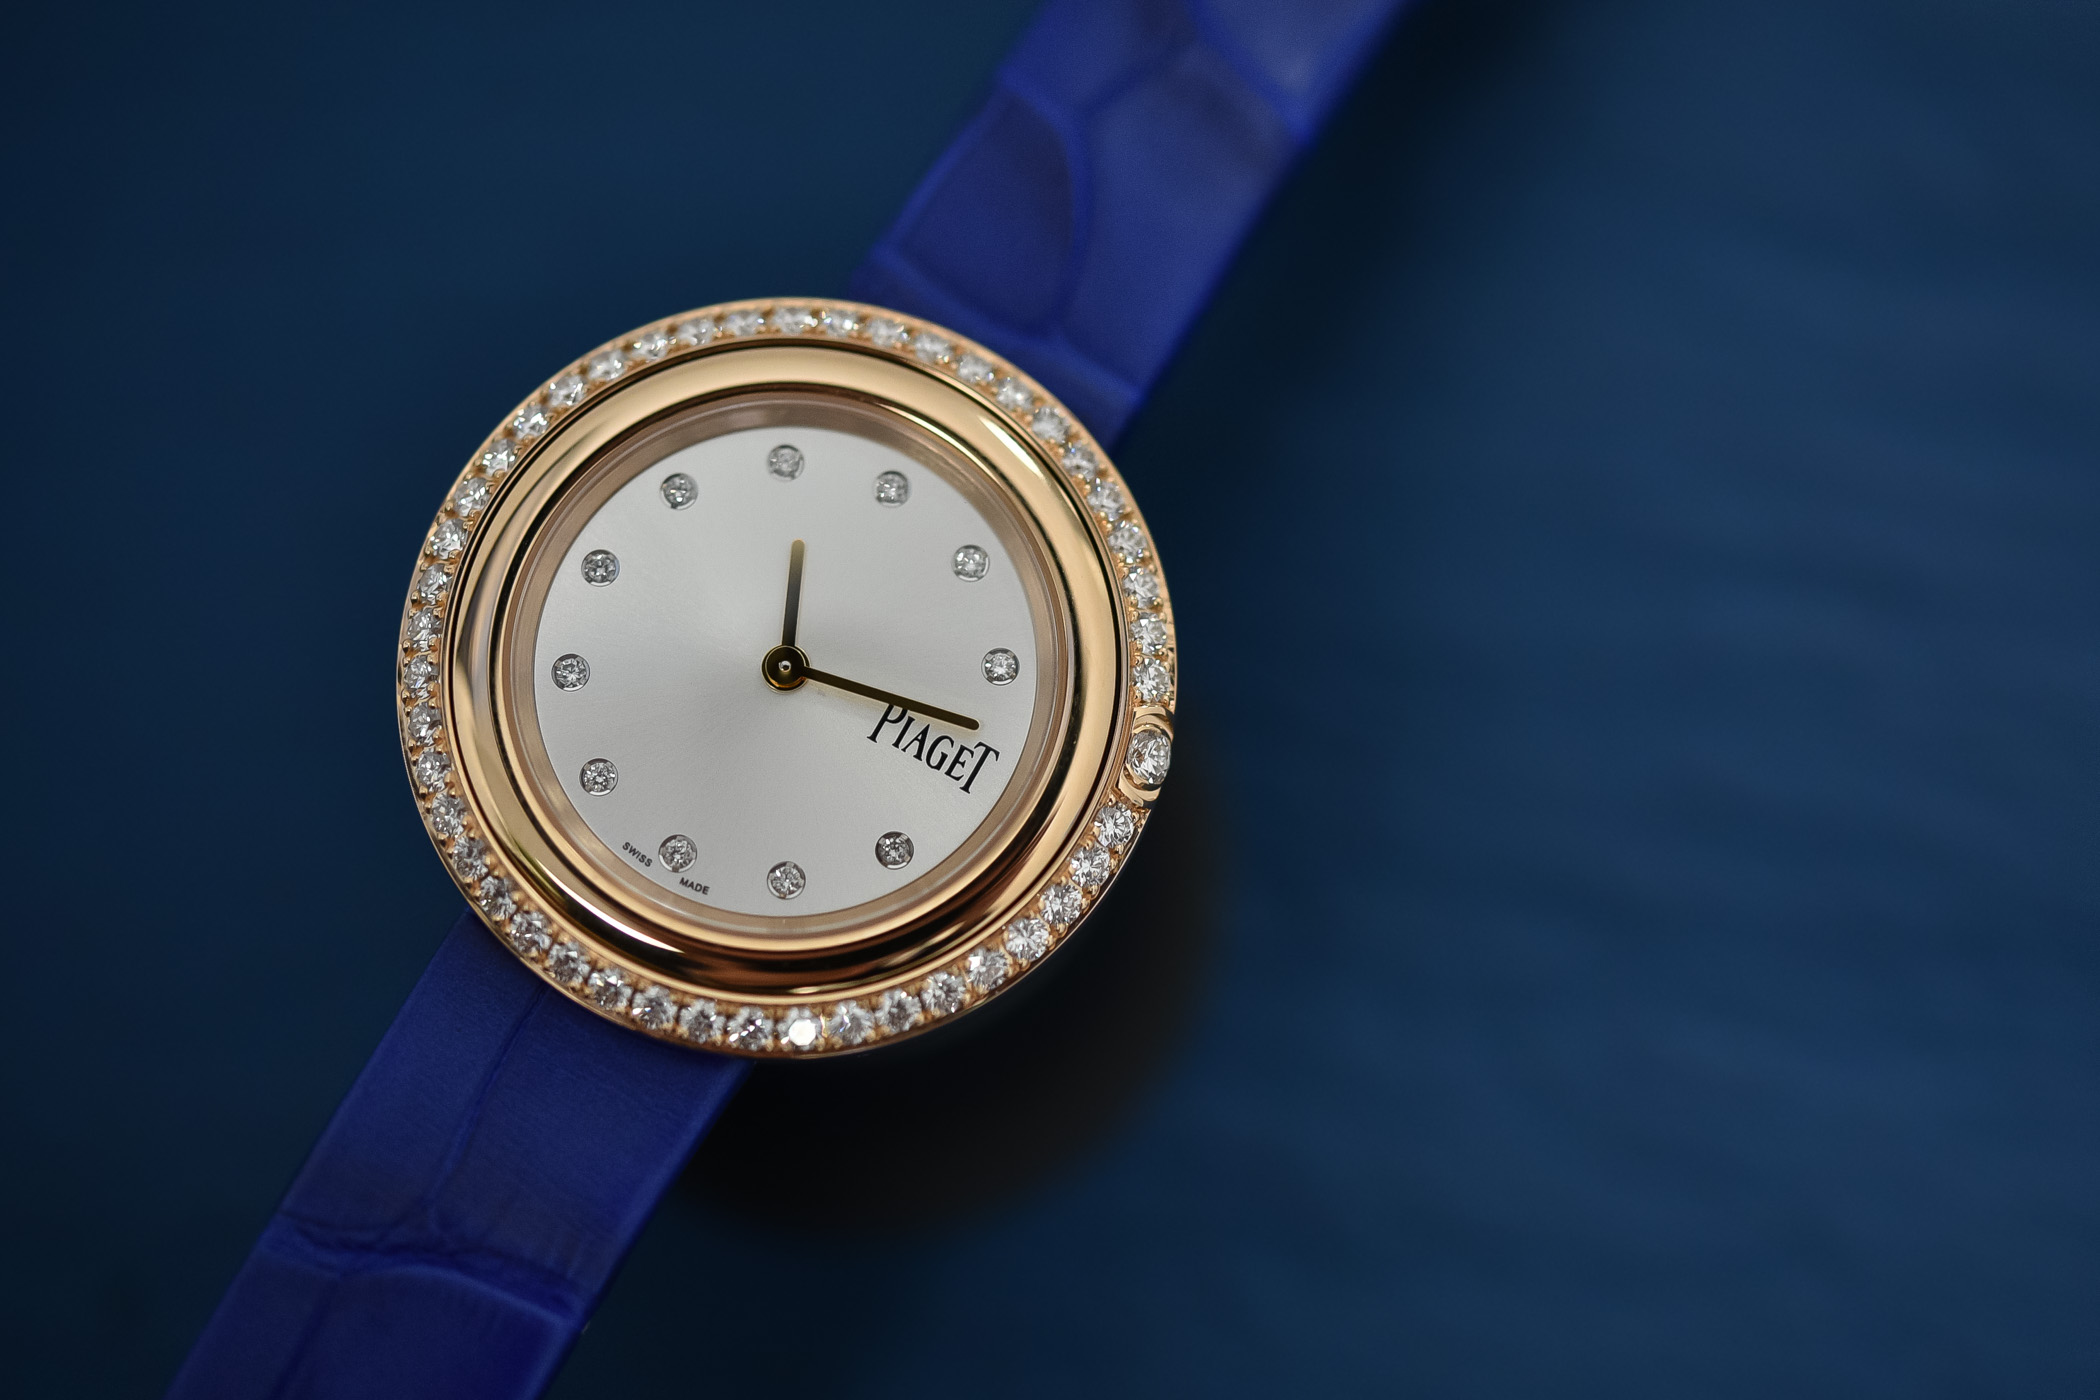 Hands-On - Piaget Possession 2018 Collection Ladies Watches - Hands-On Review (Specs & Price)